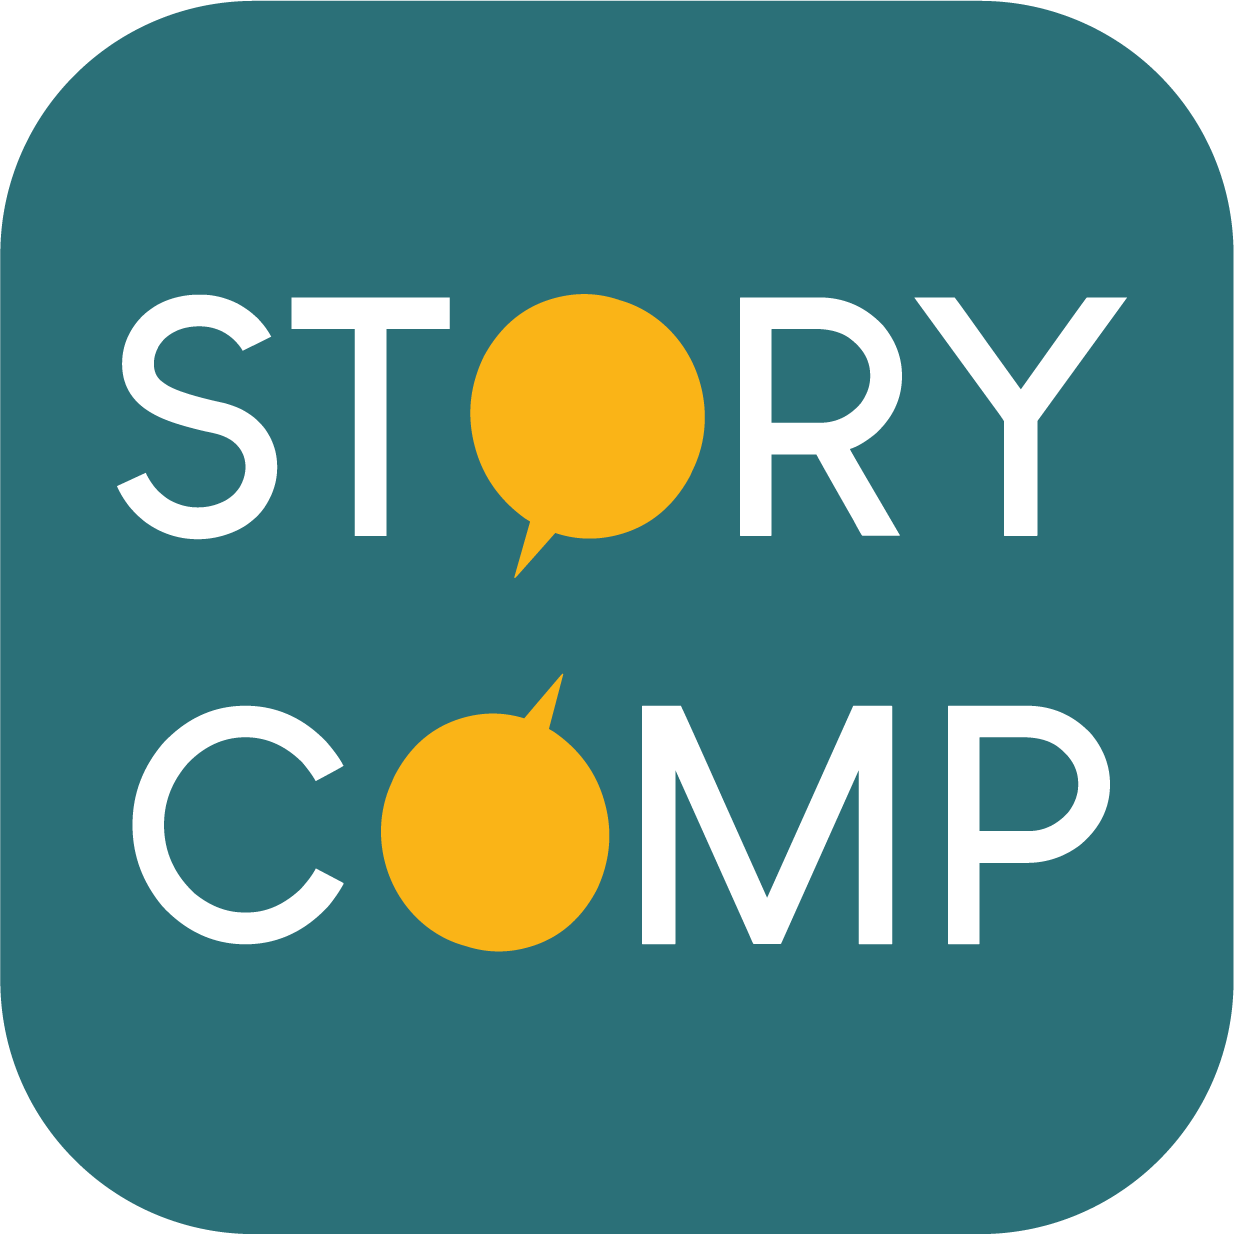 STORYCOMP-LOG-CouleurAVECFOND